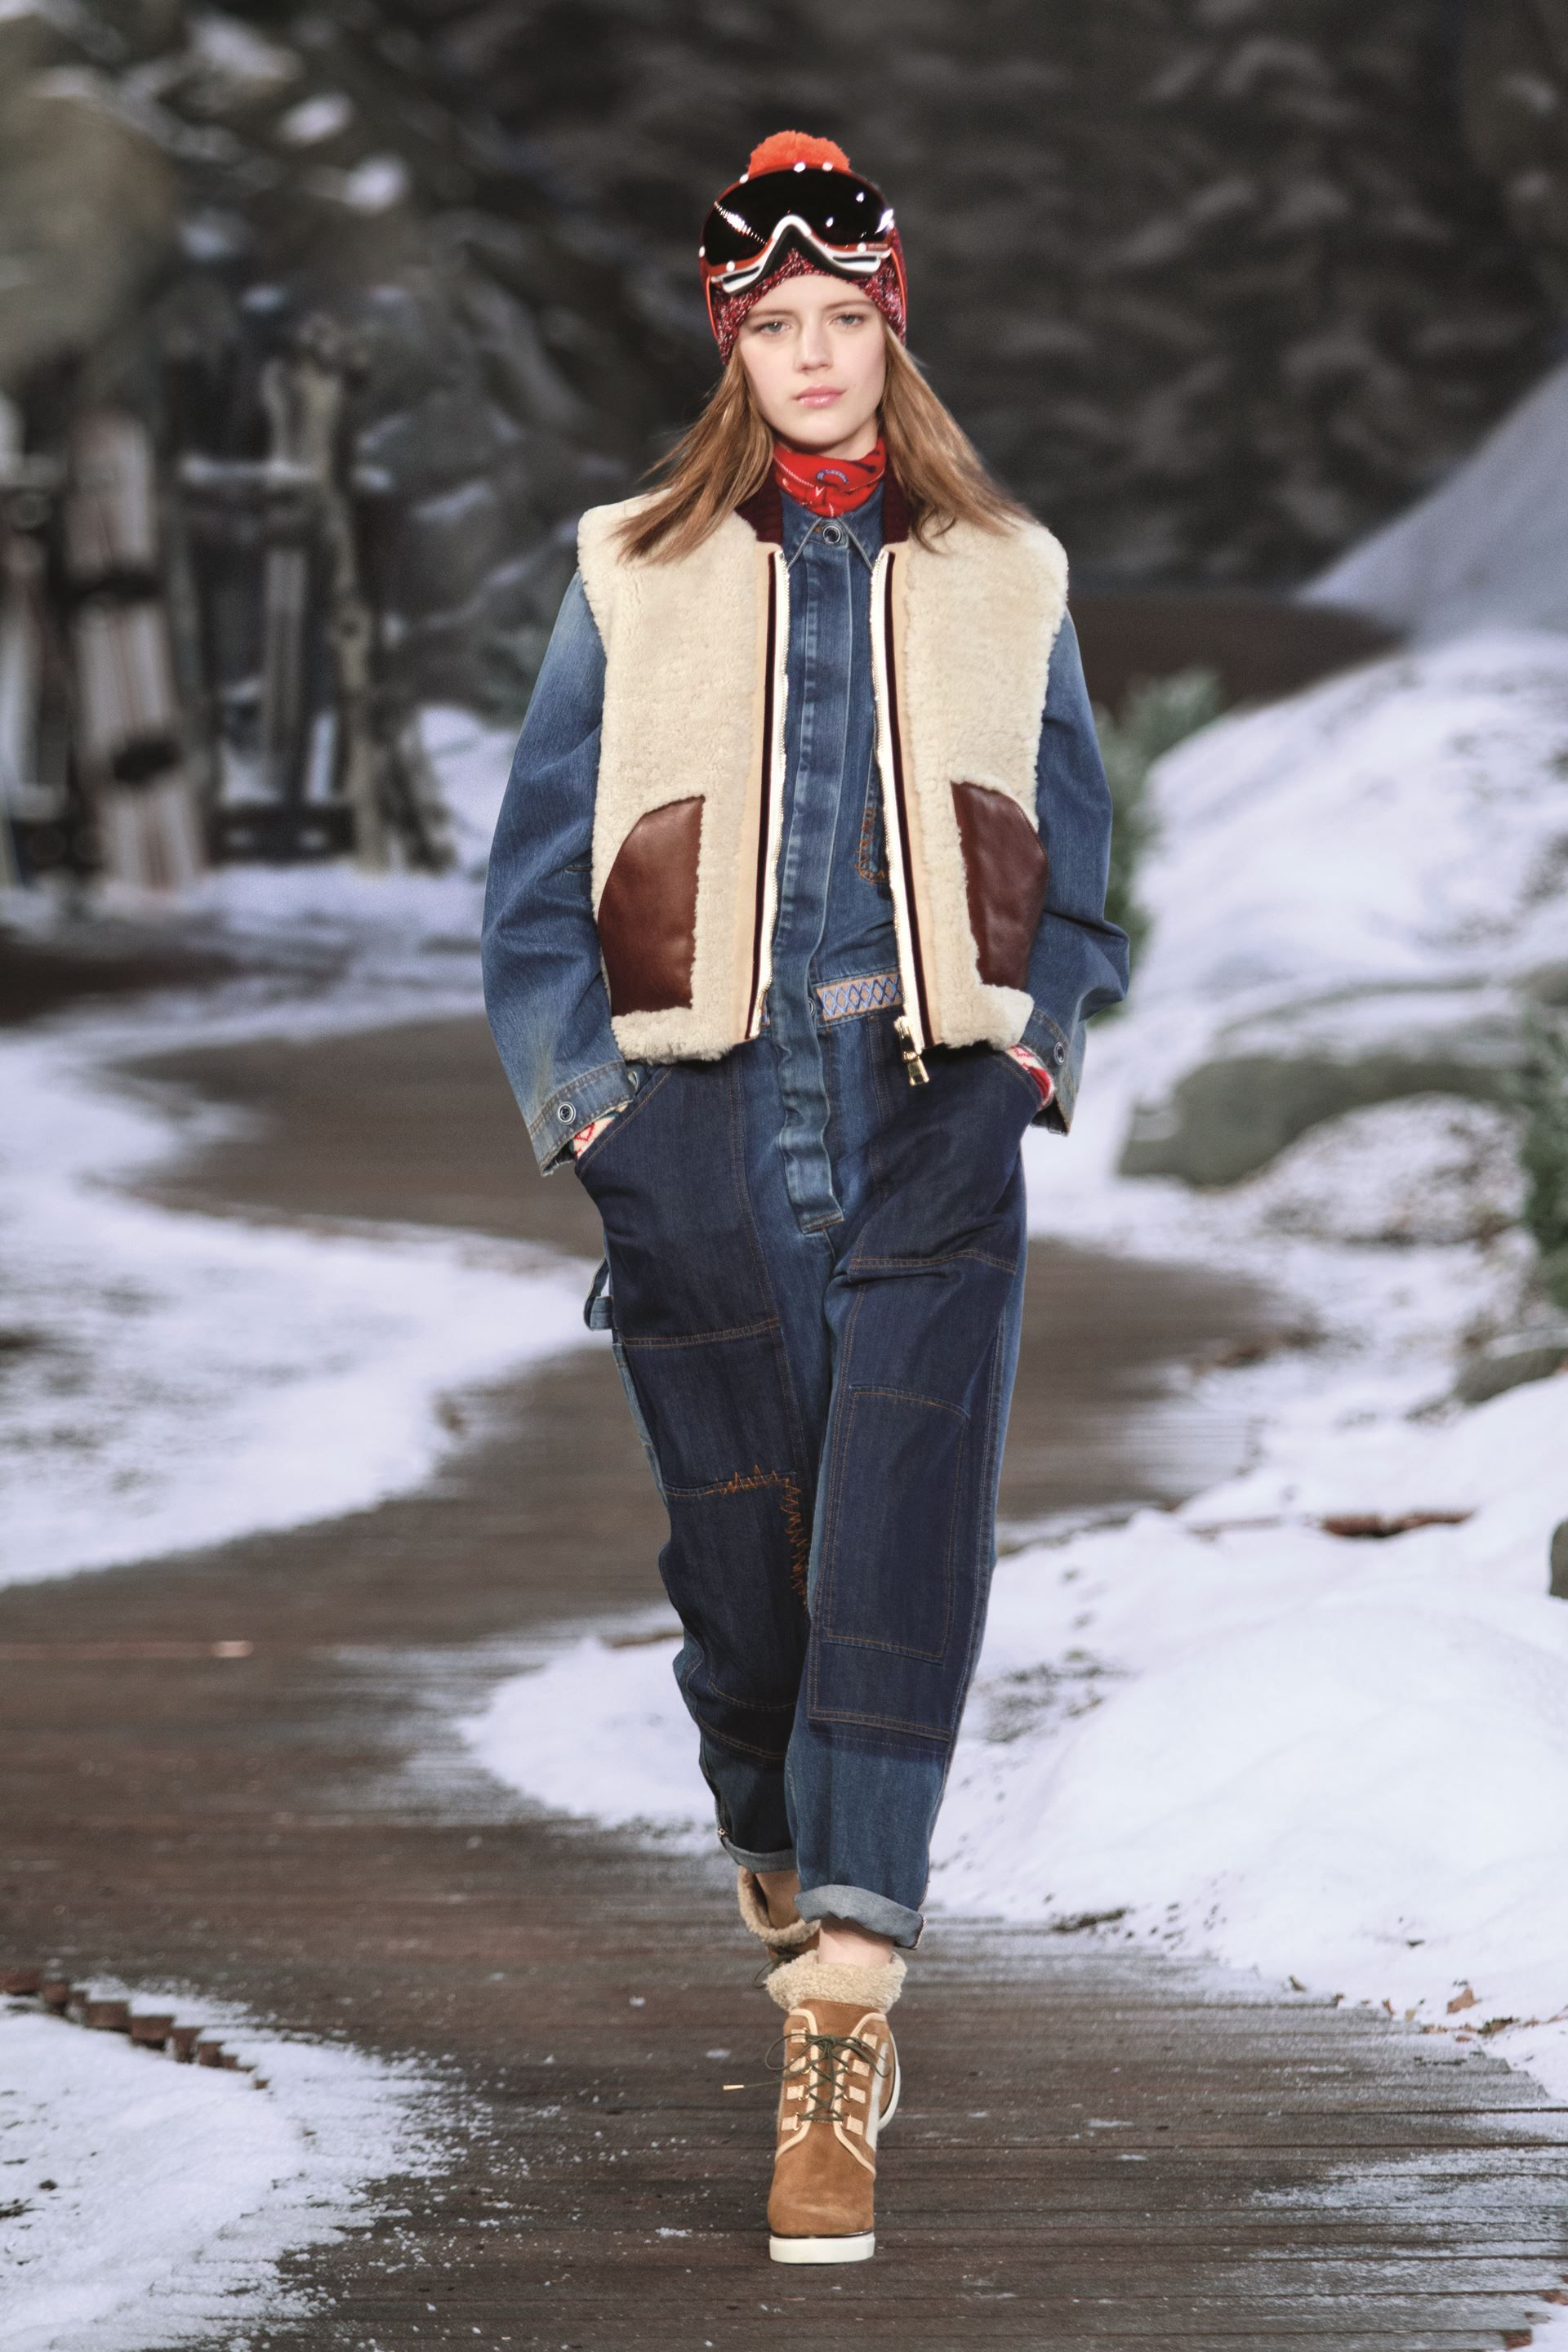 Hiker chic and mountain style get an urban twist in the Hilfiger Collection Fall '14